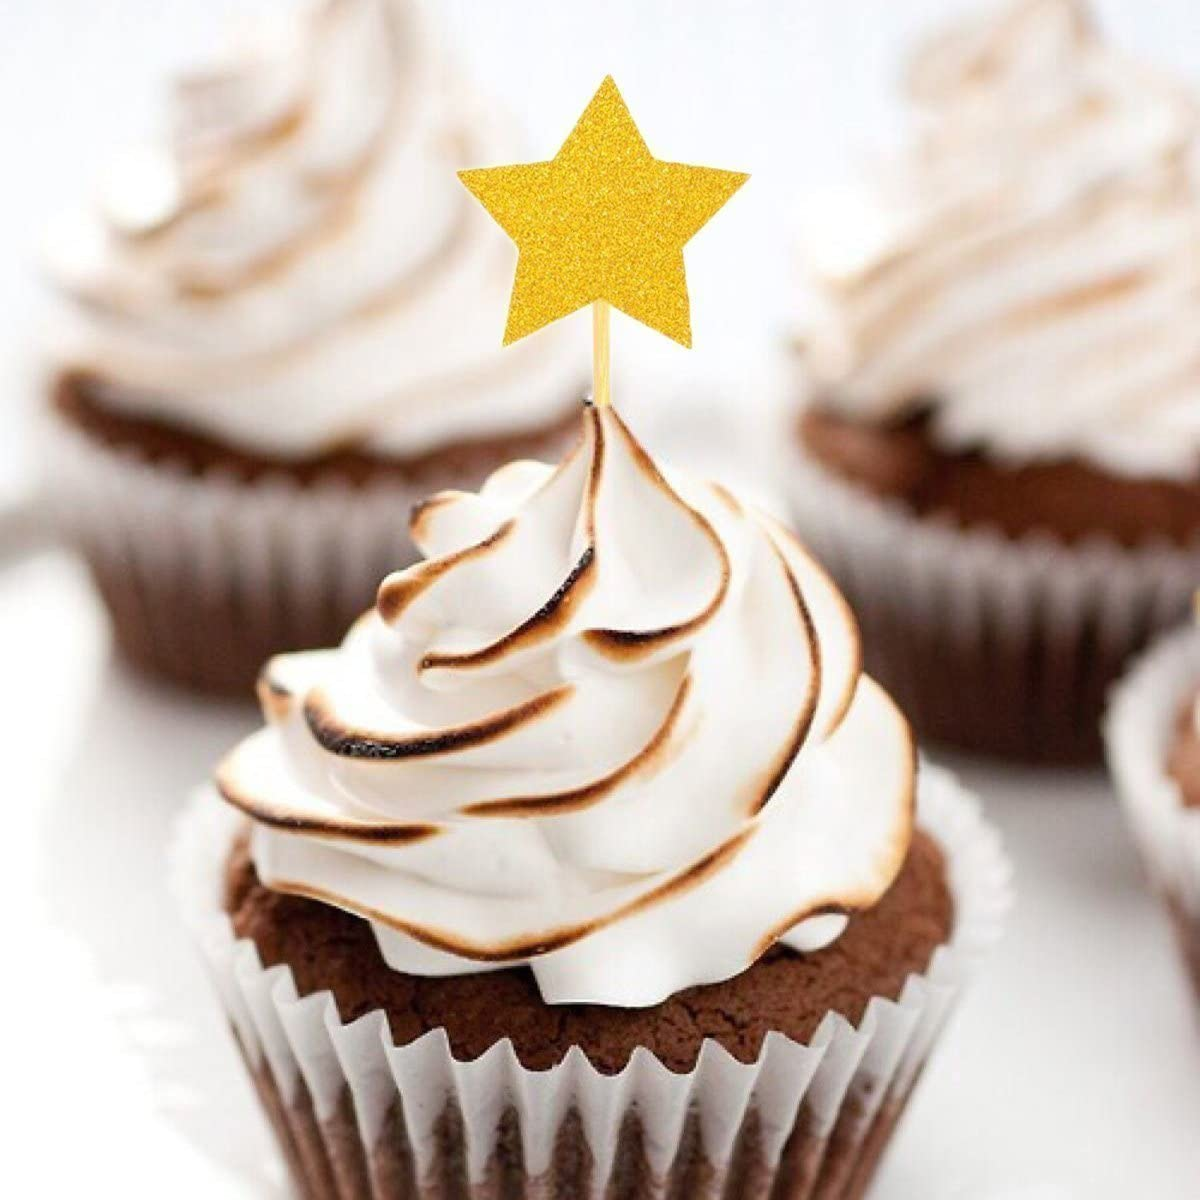 QICI 50 Pcs Gold Star Cupcake Toppers Cake Decorations Star Cupcake Toppers Twinkle Little Star Decorations Birth Baby Shower Decorations Baby Cake Flags